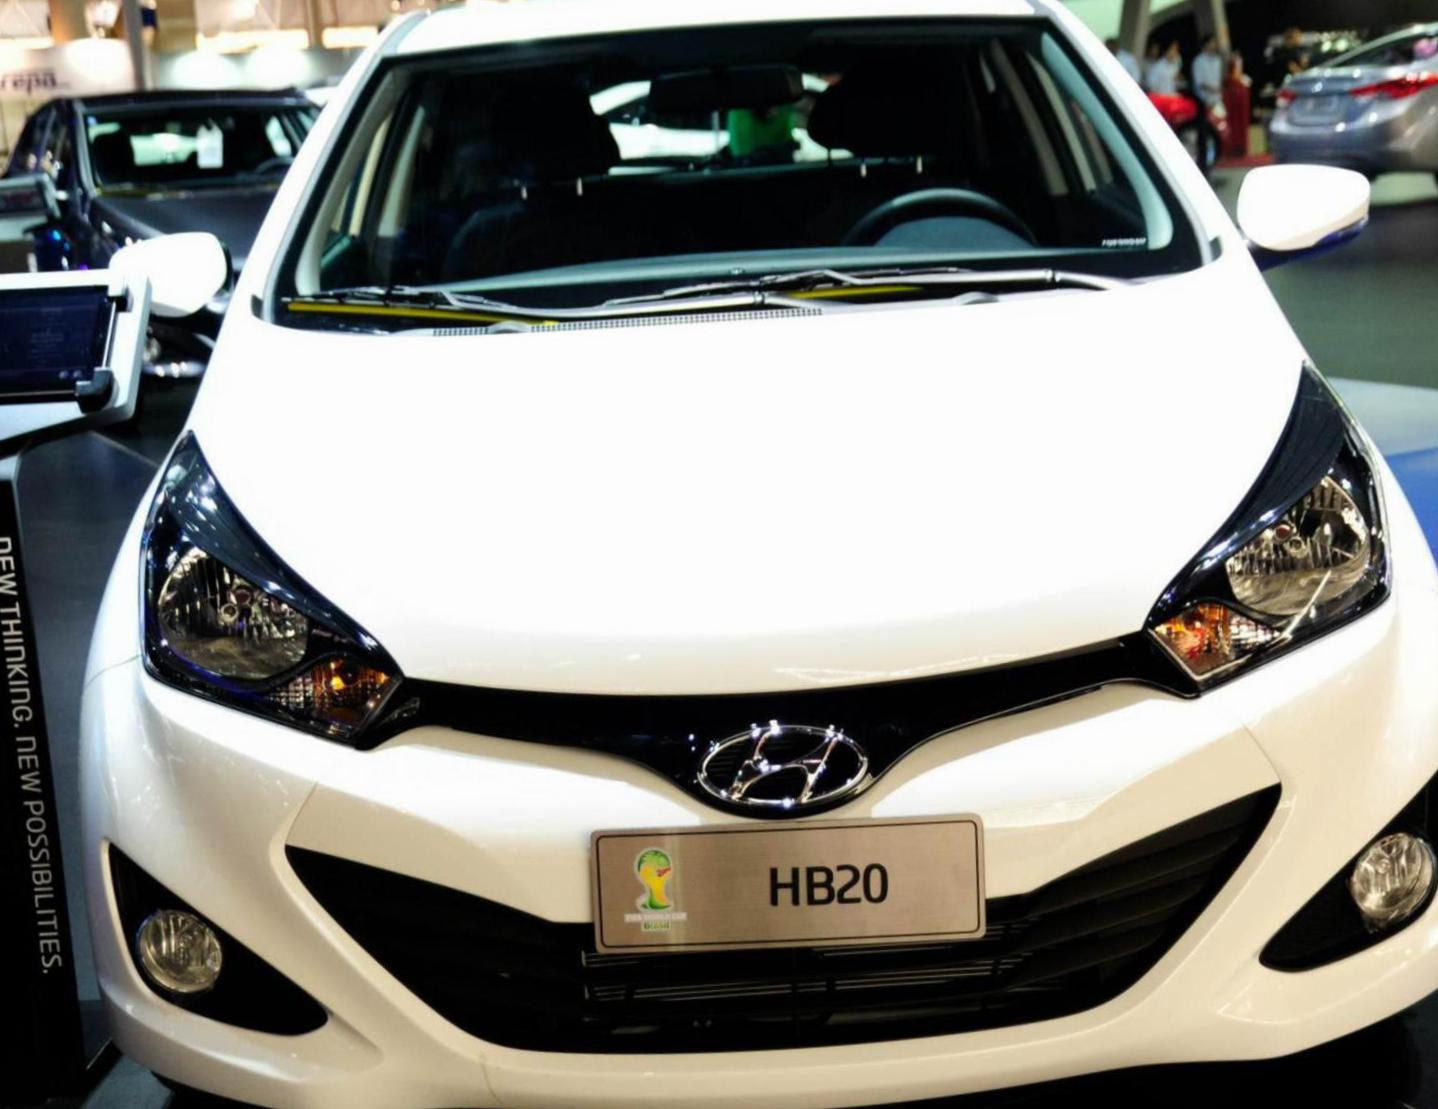 HB20 Hyundai Specifications hatchback